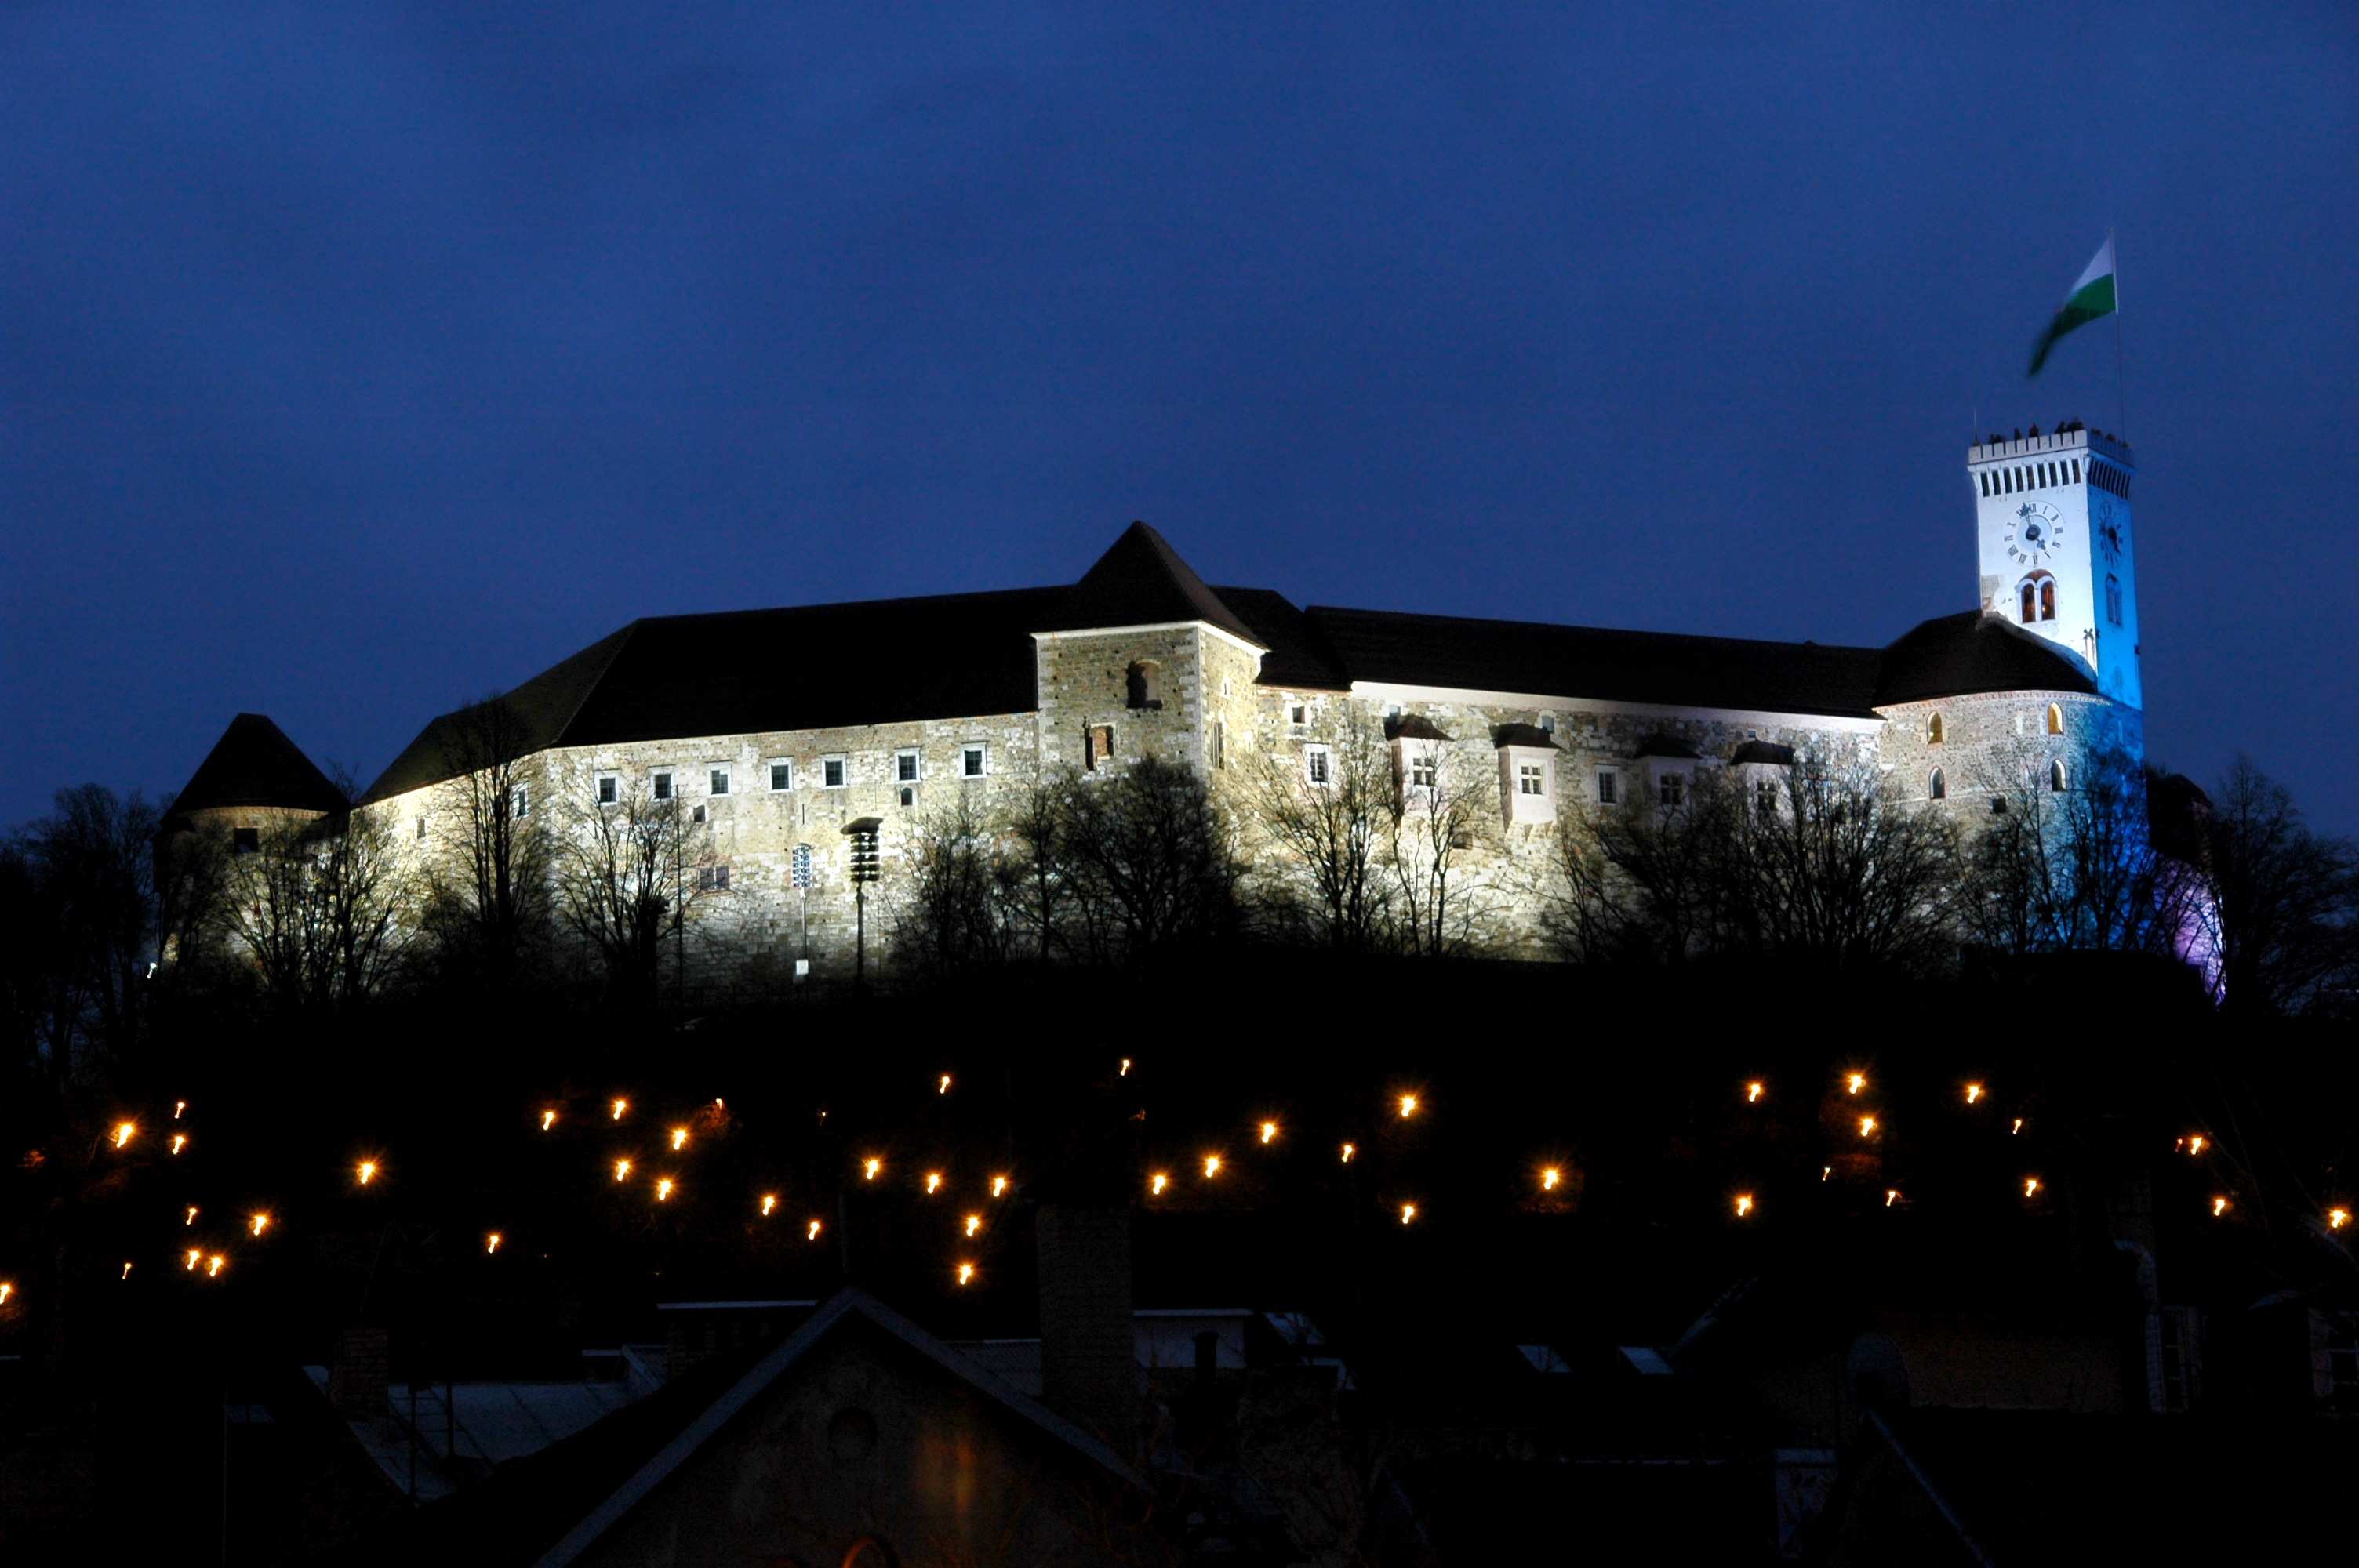 night-view-of-the-castle-d.wedam.jpg